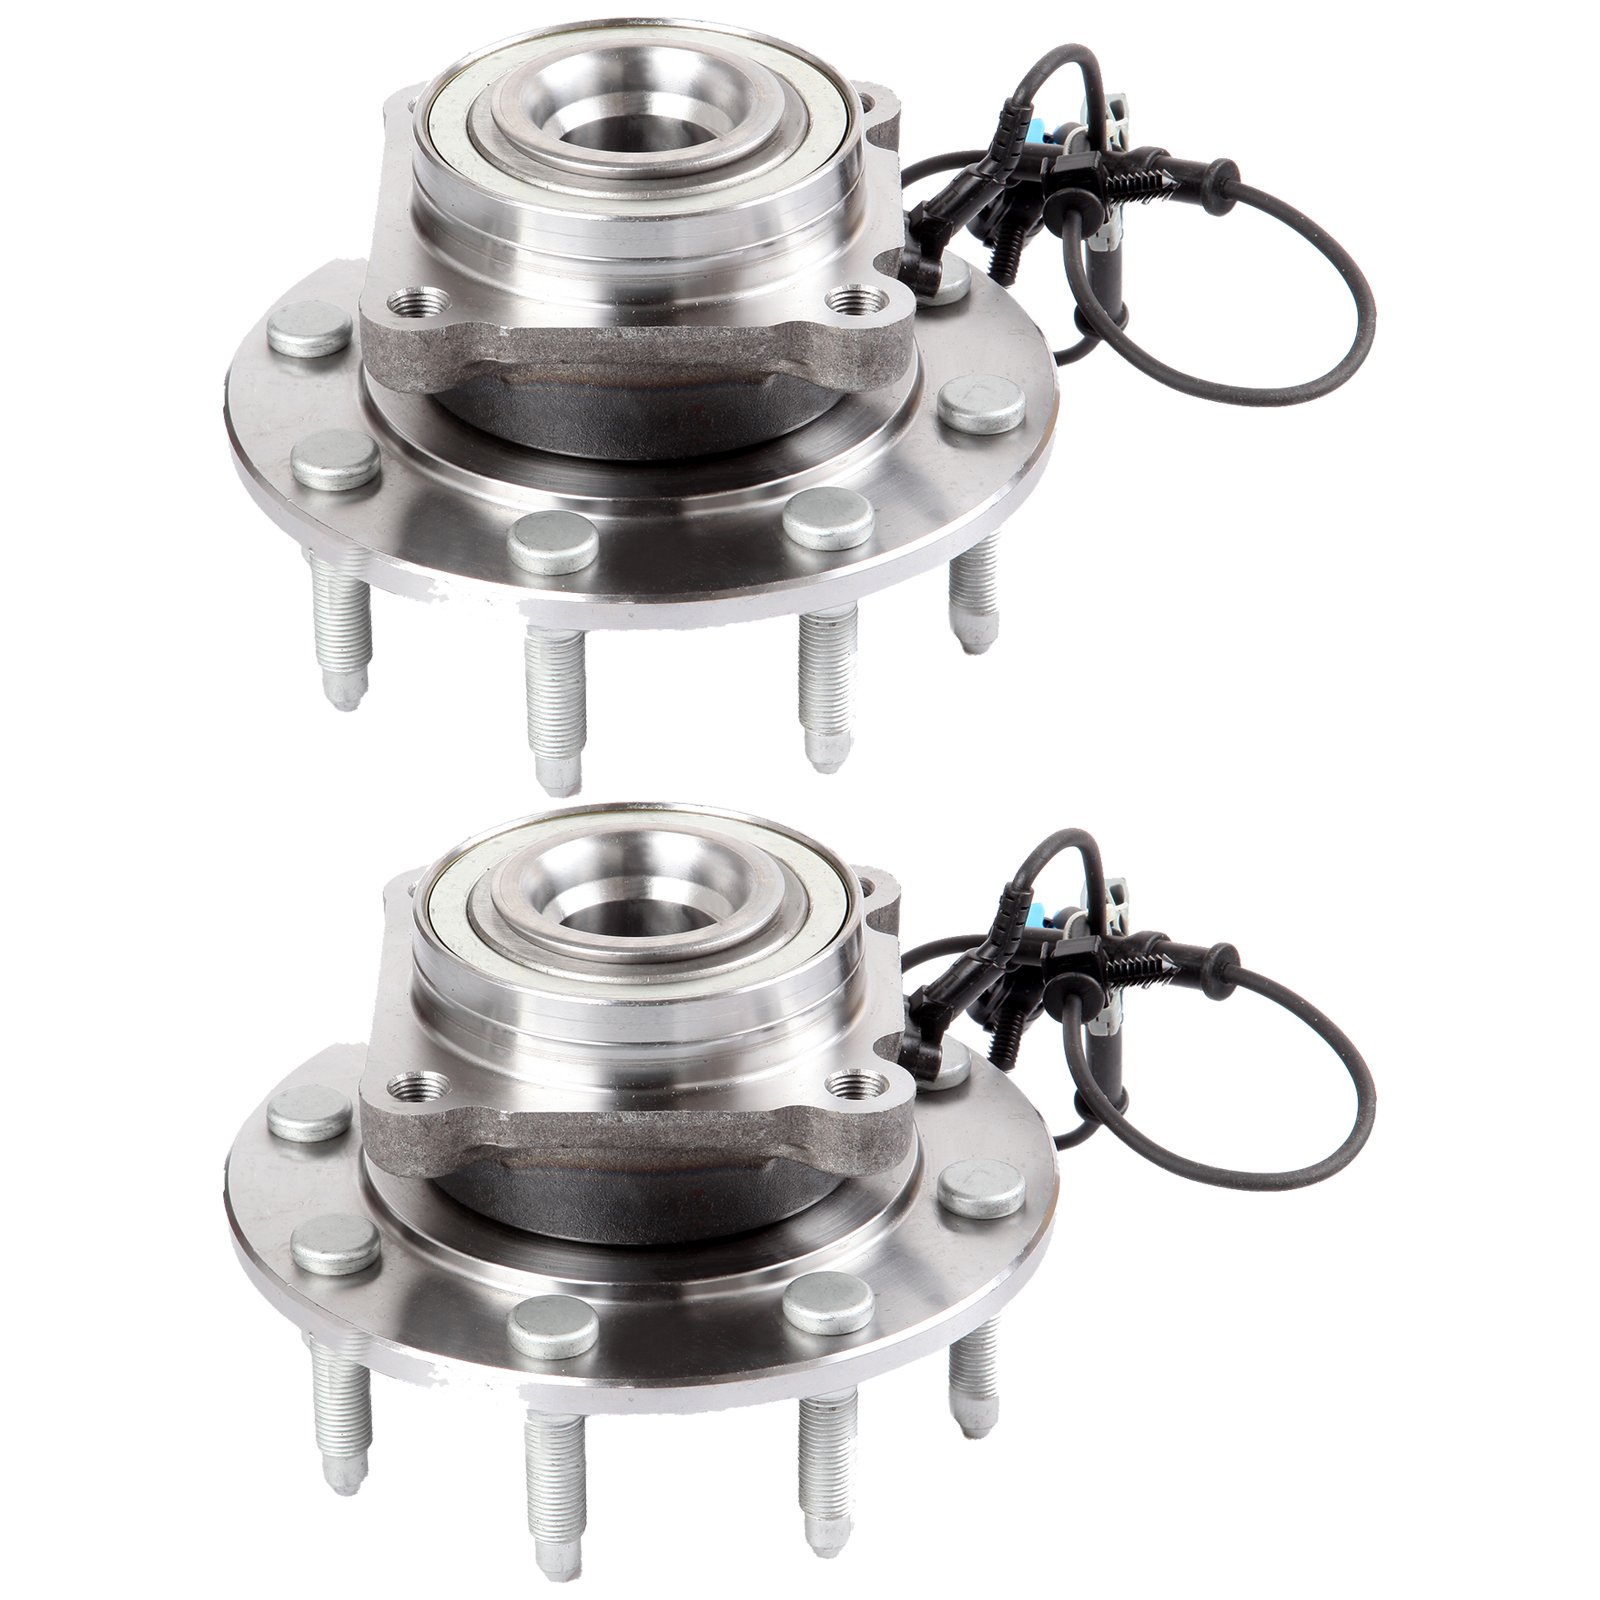 Scitoo Both (2) 515098 New Complete Front Wheel Hub Bearing Assembly fit 2007 2008 2009 Chevy Silverado GMC Sierra 8 Lugs w/ABS